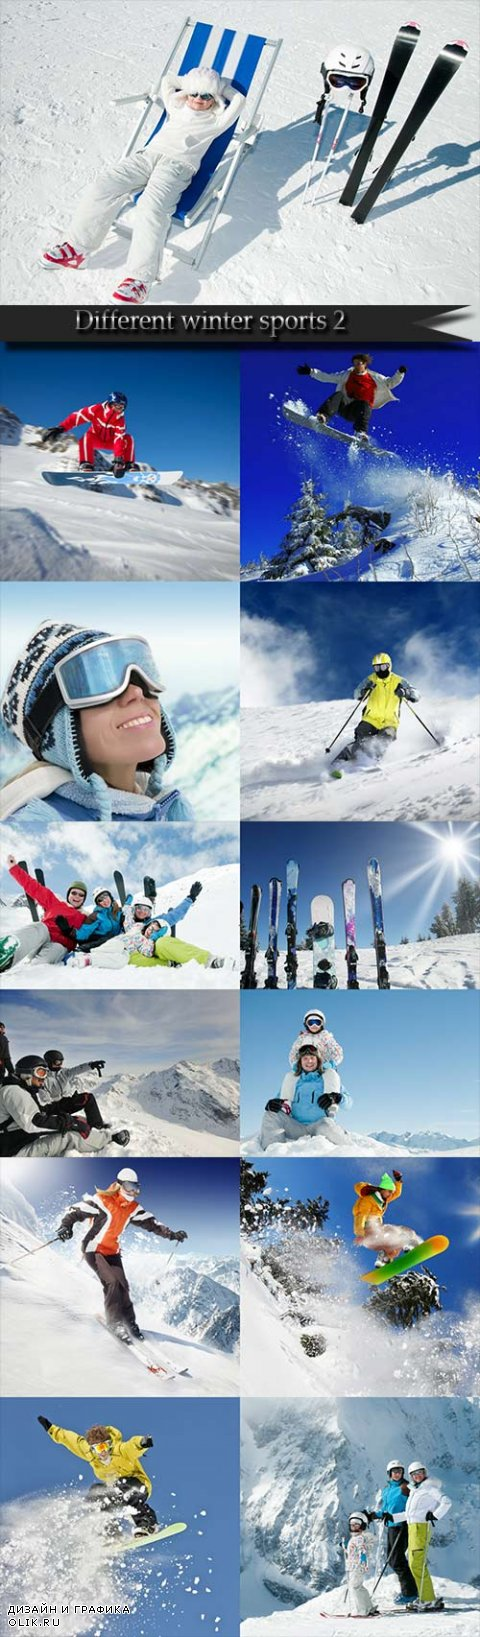 Different winter sports 2